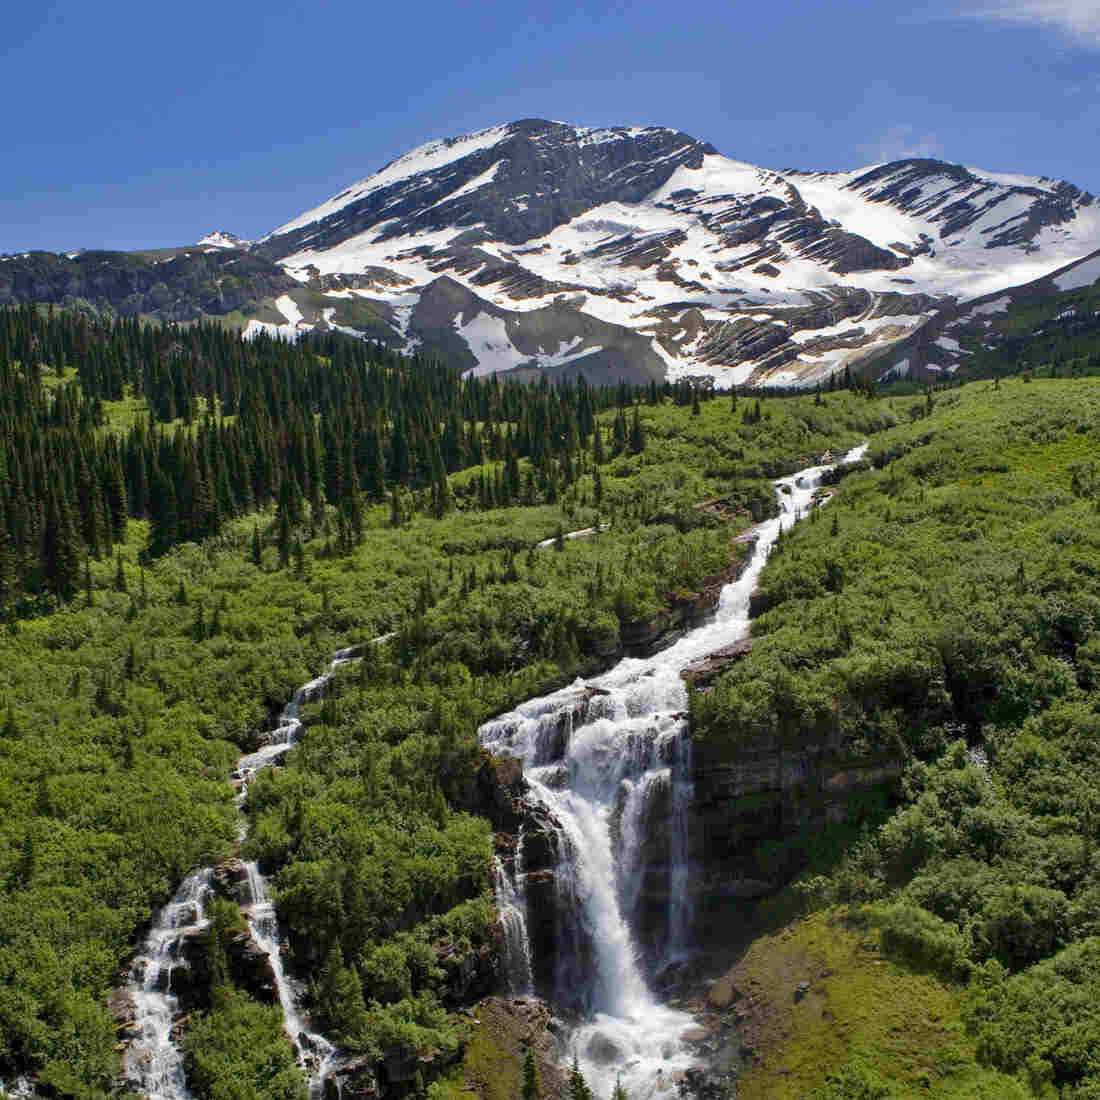 An earlier spring in Montana's Glacier National Park means full waterfalls at first — but much drier summers.